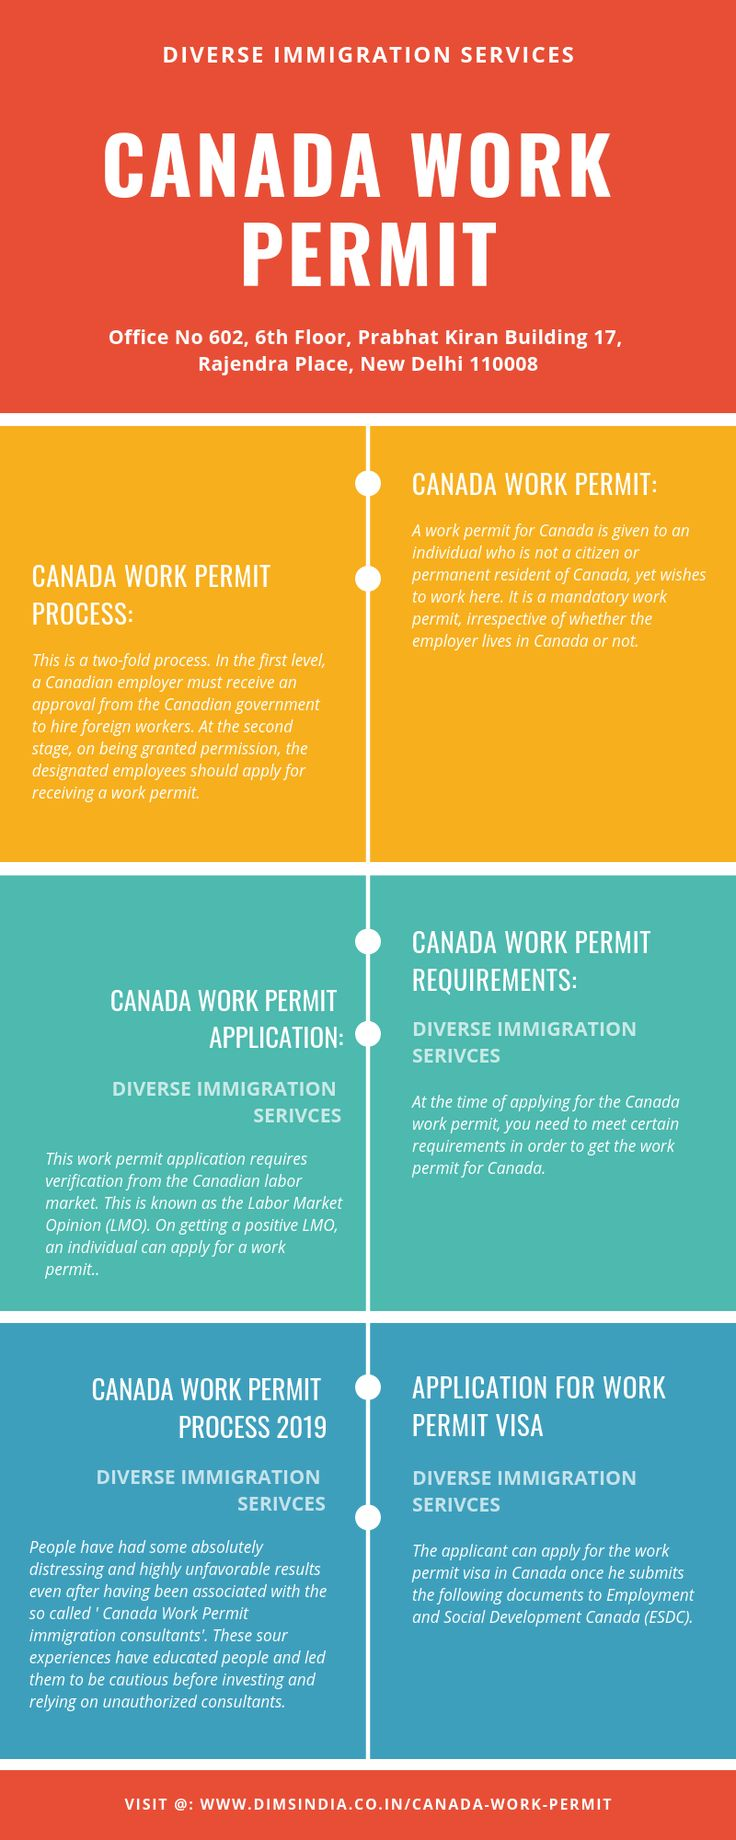 Apply for Canada Work Permit Visa 2019 Process for Indian